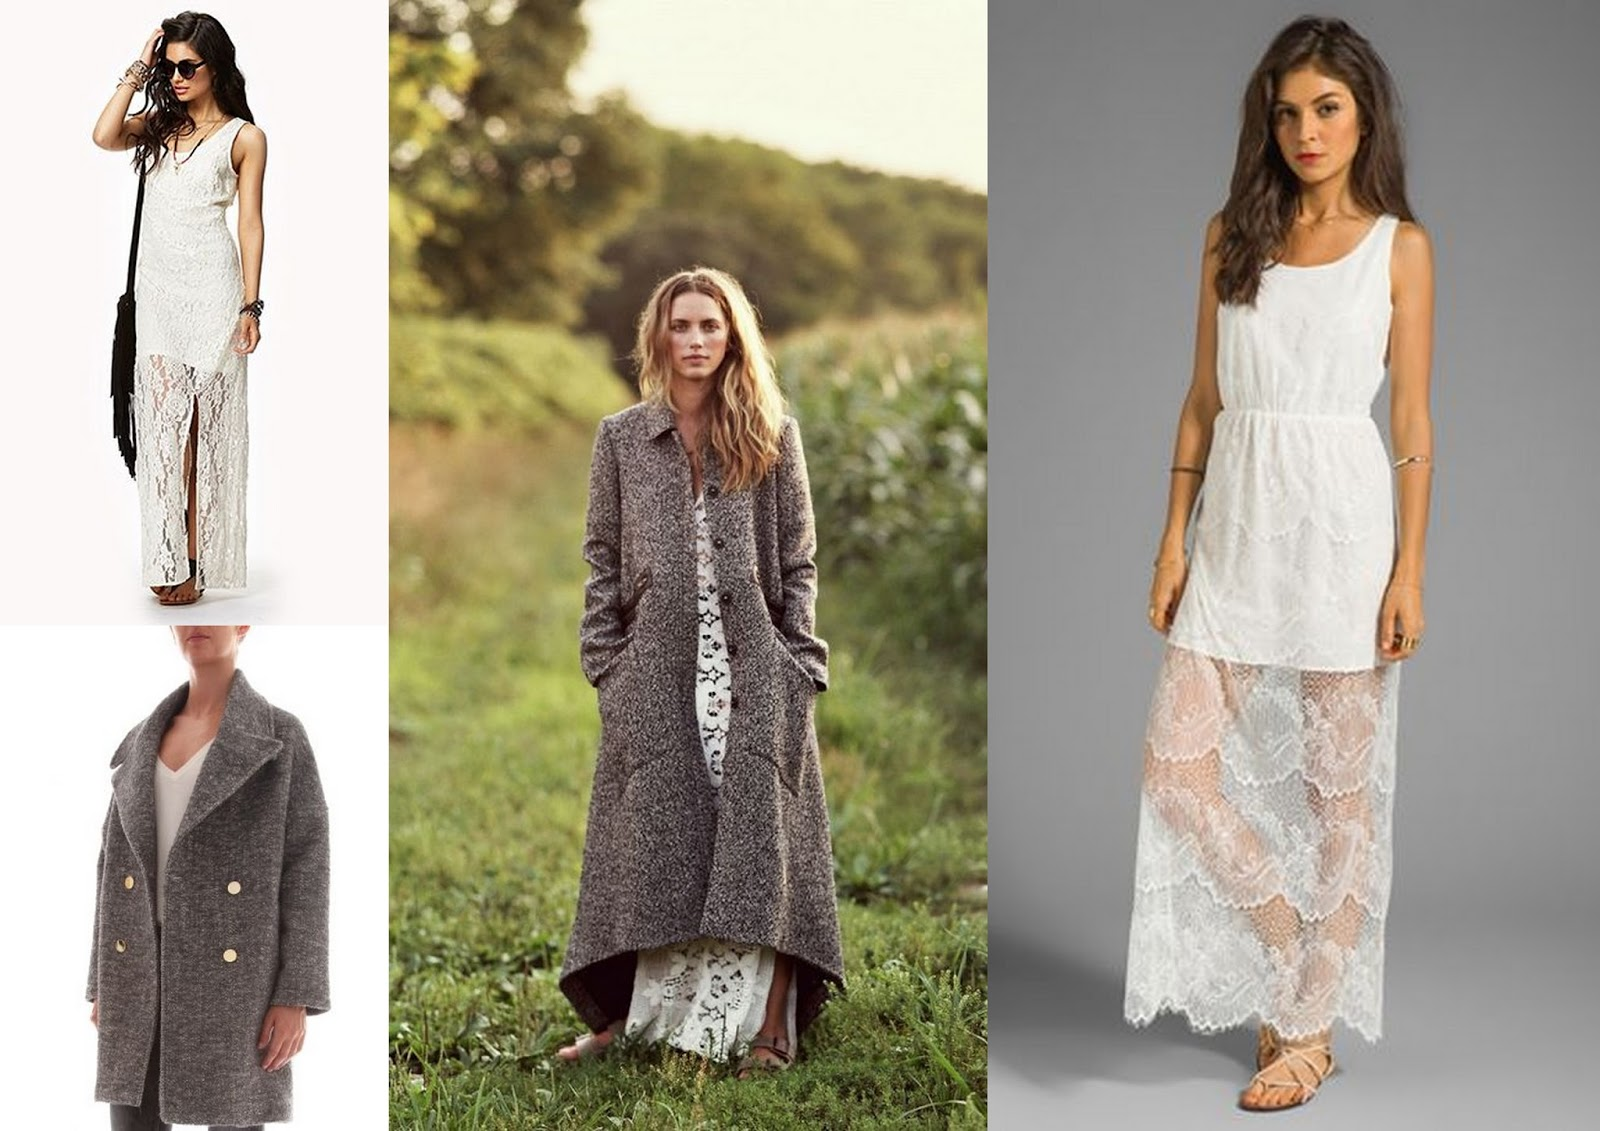 Leilani Bishop, Leilani Bishop Perfume, GRey oversized coat, white lace dress, Forever 21 maxi dress, The glamourai editorial